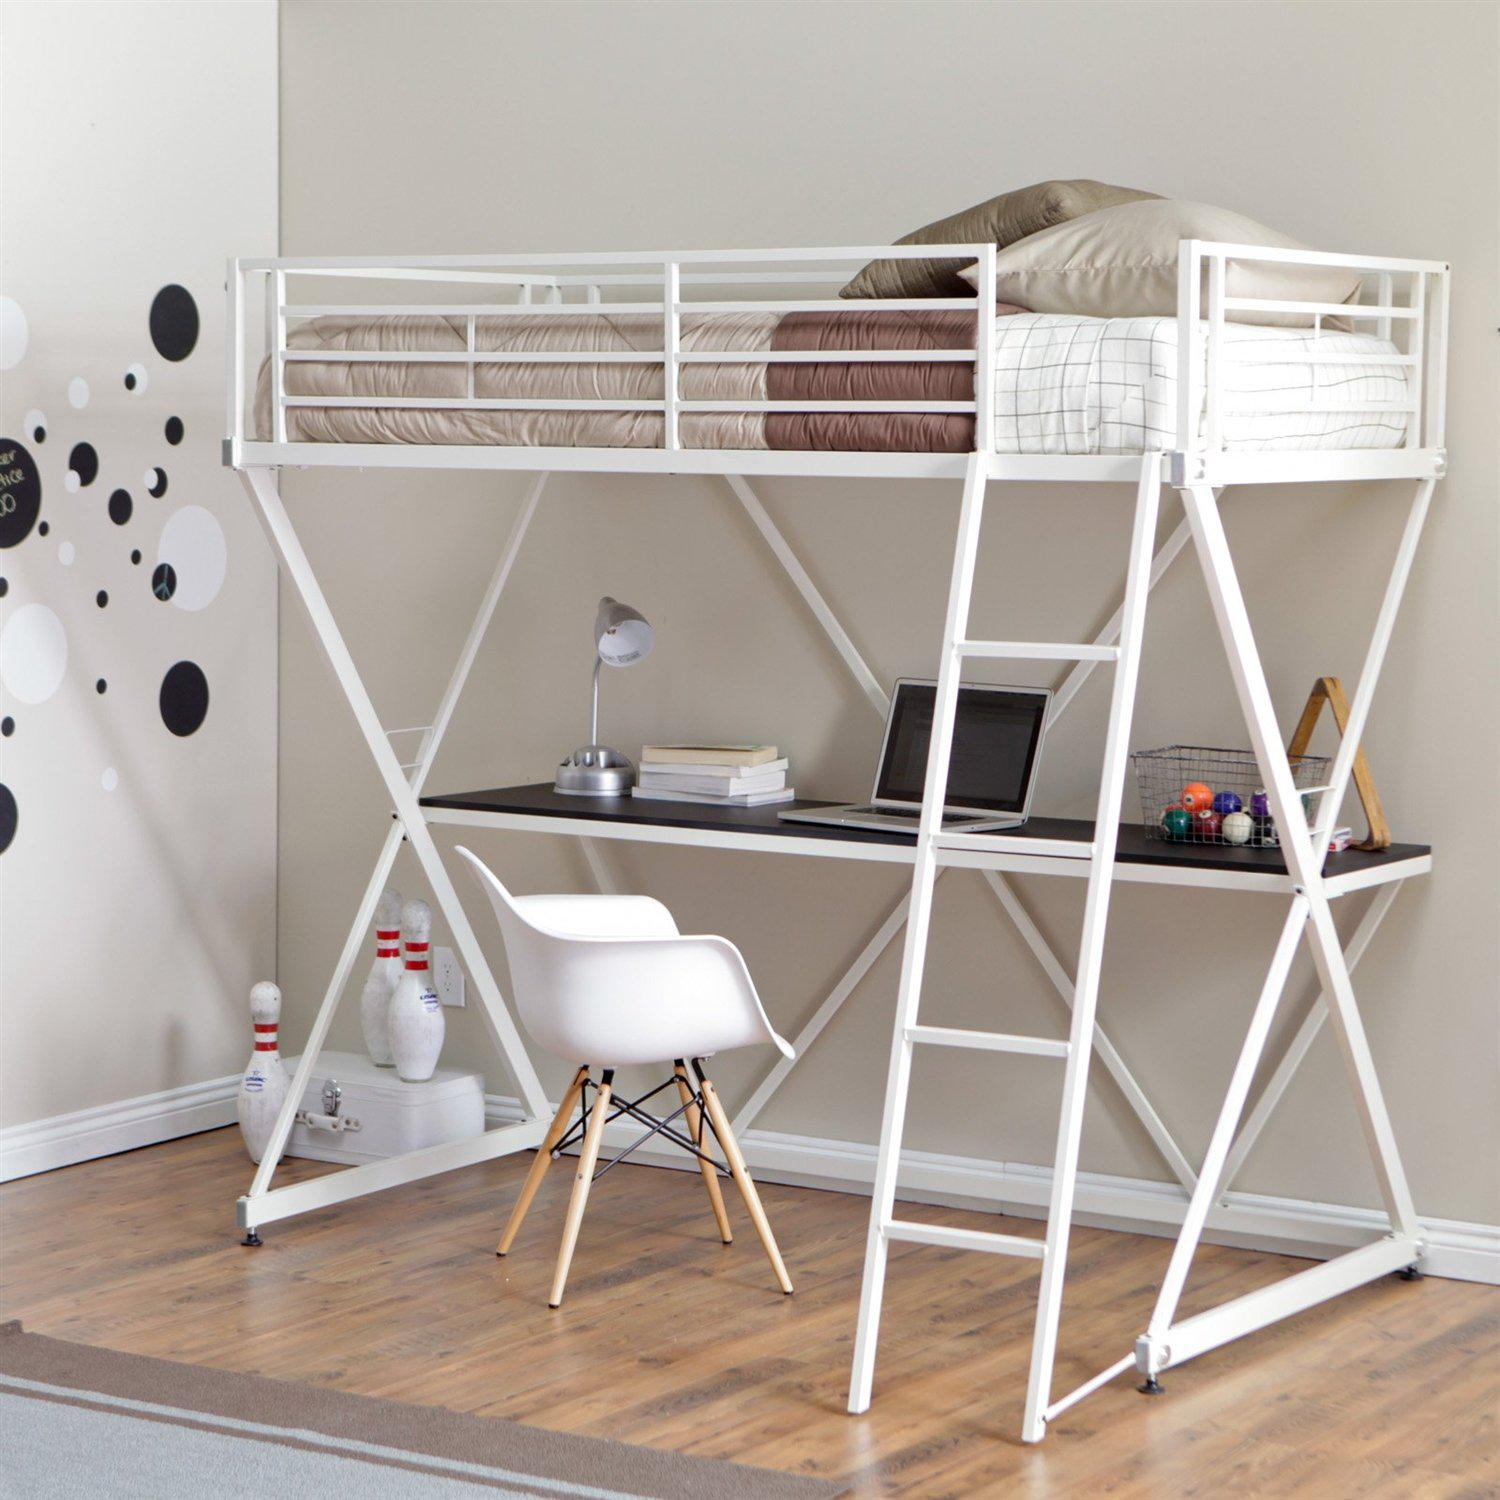 Saturn Bunk Bed Modern Twin Size Bunk Bed Loft With Desk In White Metal Finish